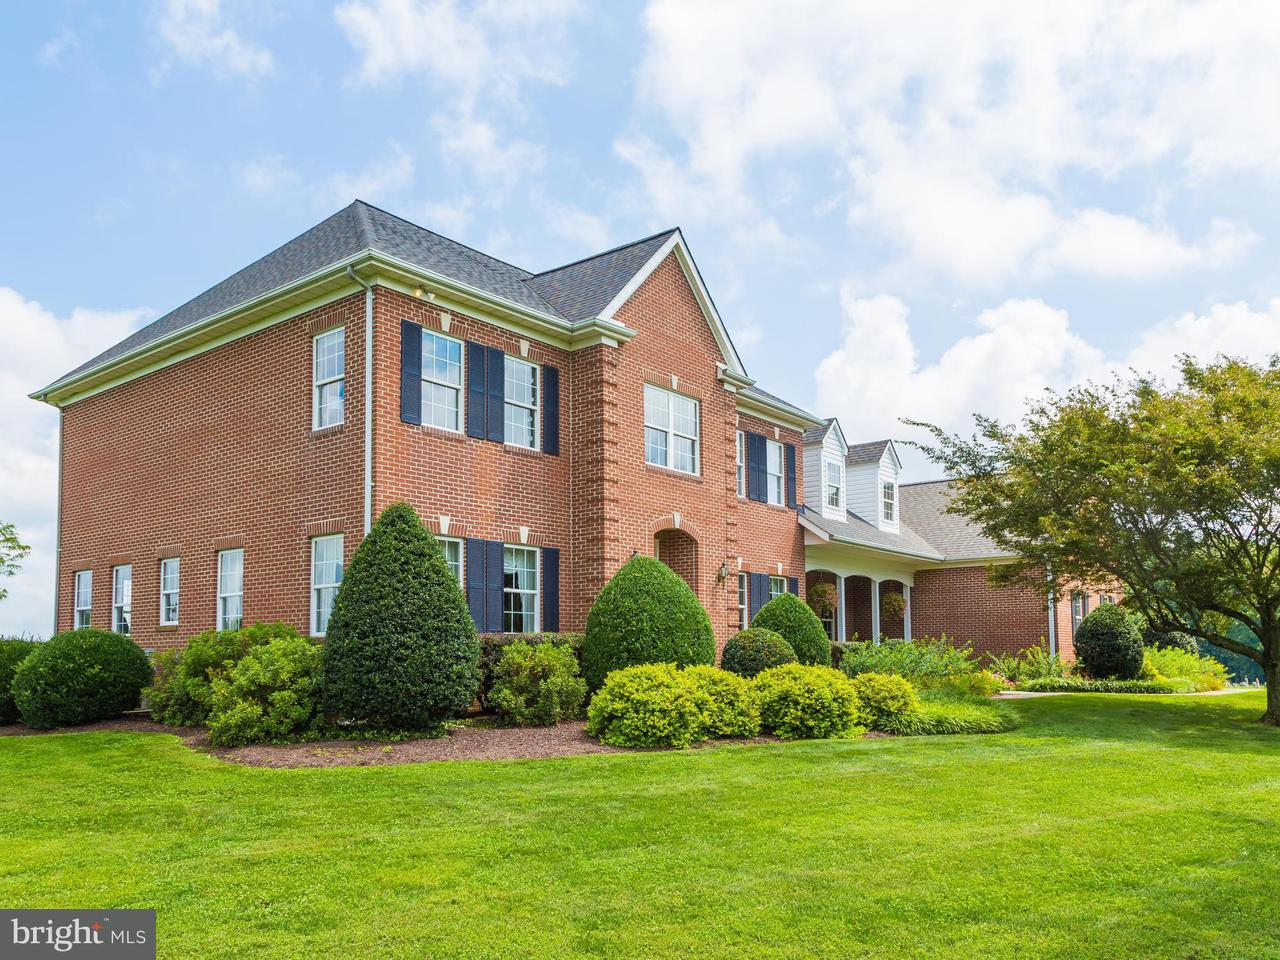 Single Family Home for Sale at 3031 Mount Carmel Cemetery Road 3031 Mount Carmel Cemetery Road Brookeville, Maryland 20833 United States